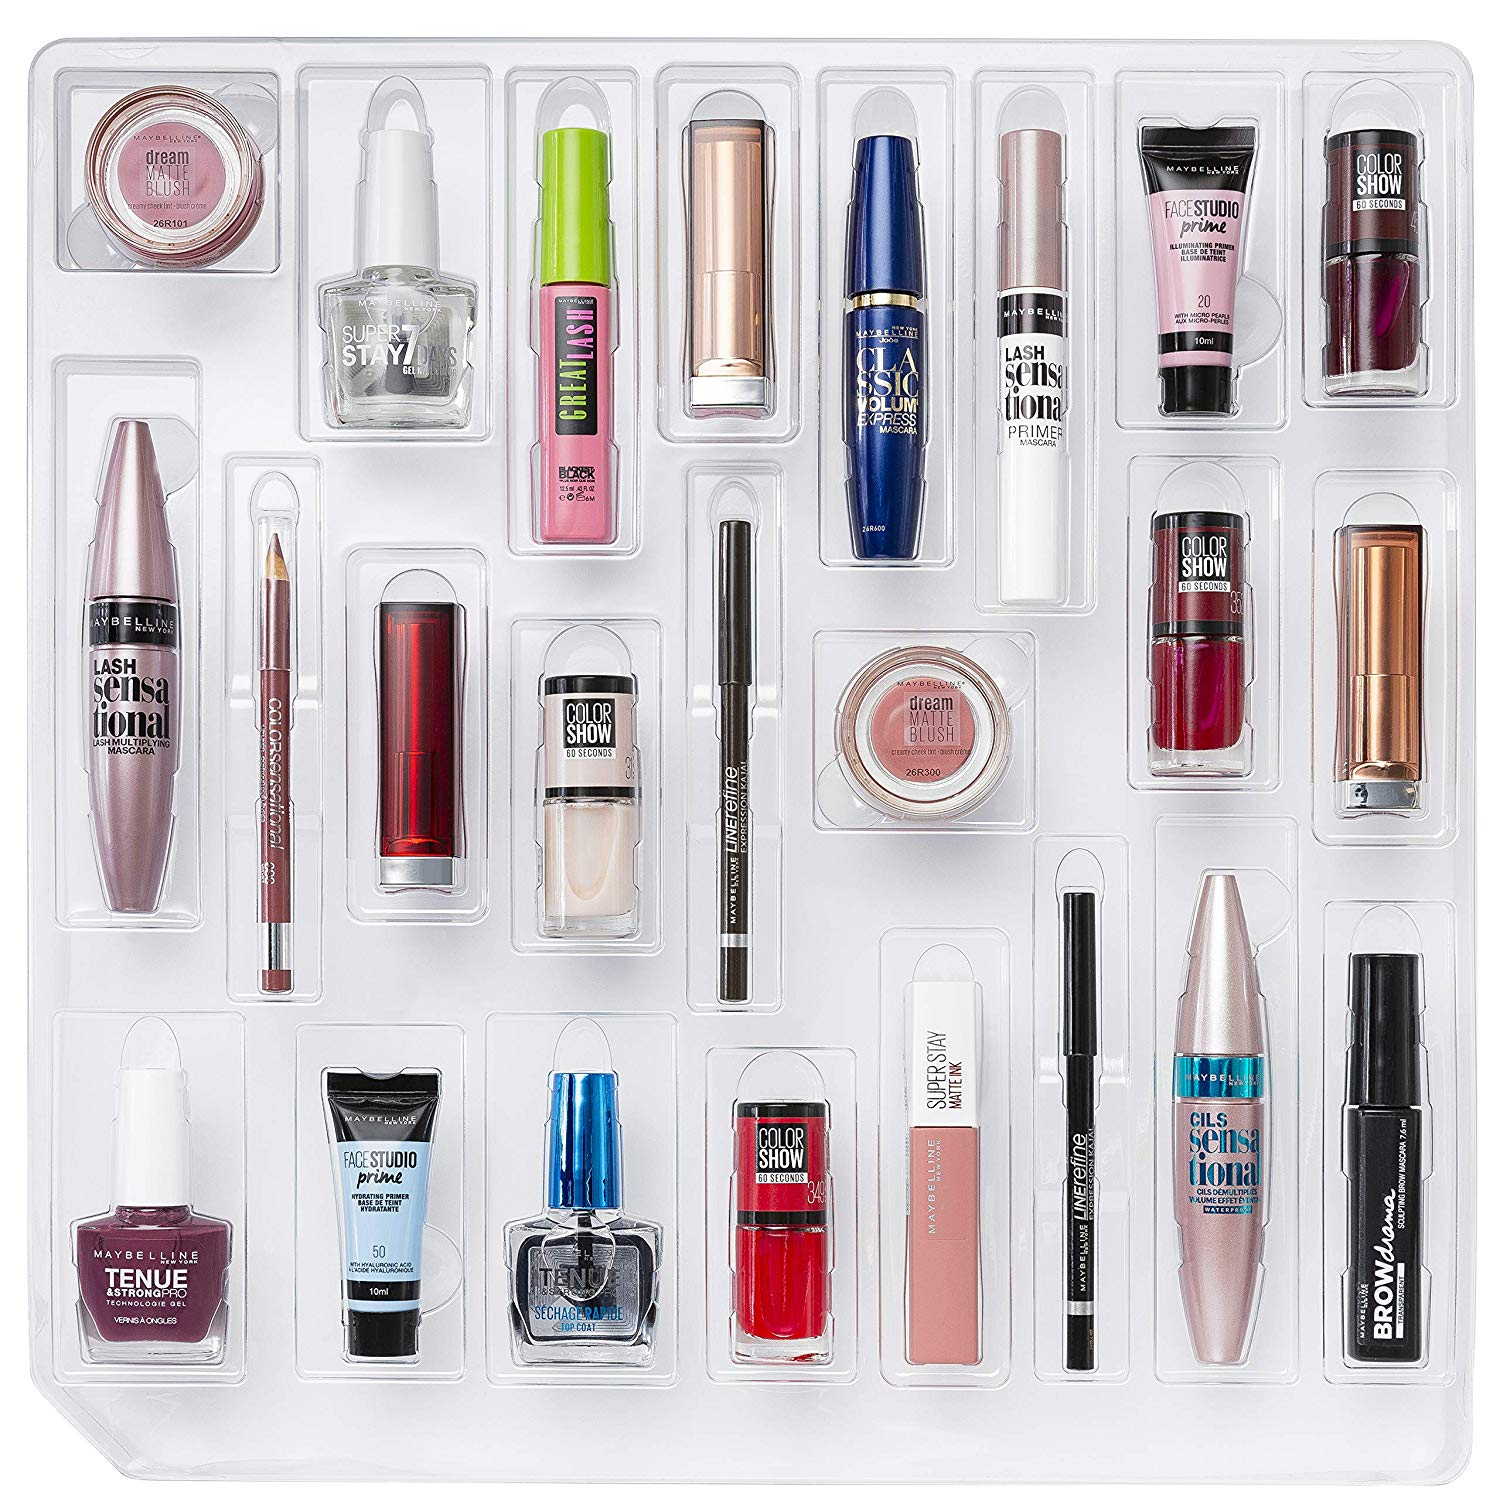 Maybelline New York Beauty-Adventskalender  - Bild 3